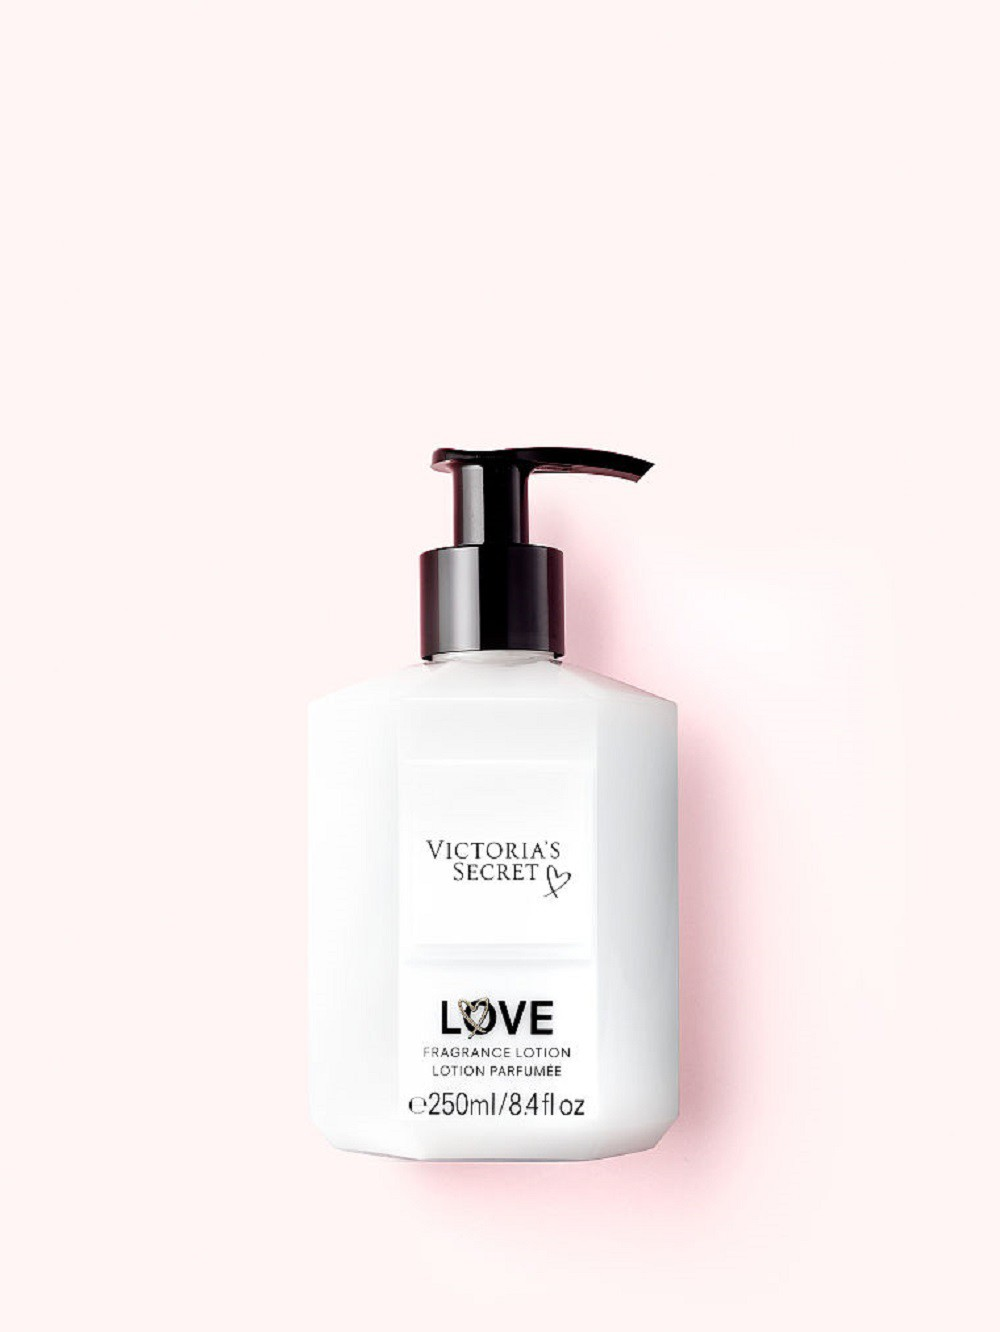 VICTORIA'S SECRET LOVE 250ml FRAGRANCE LOTION